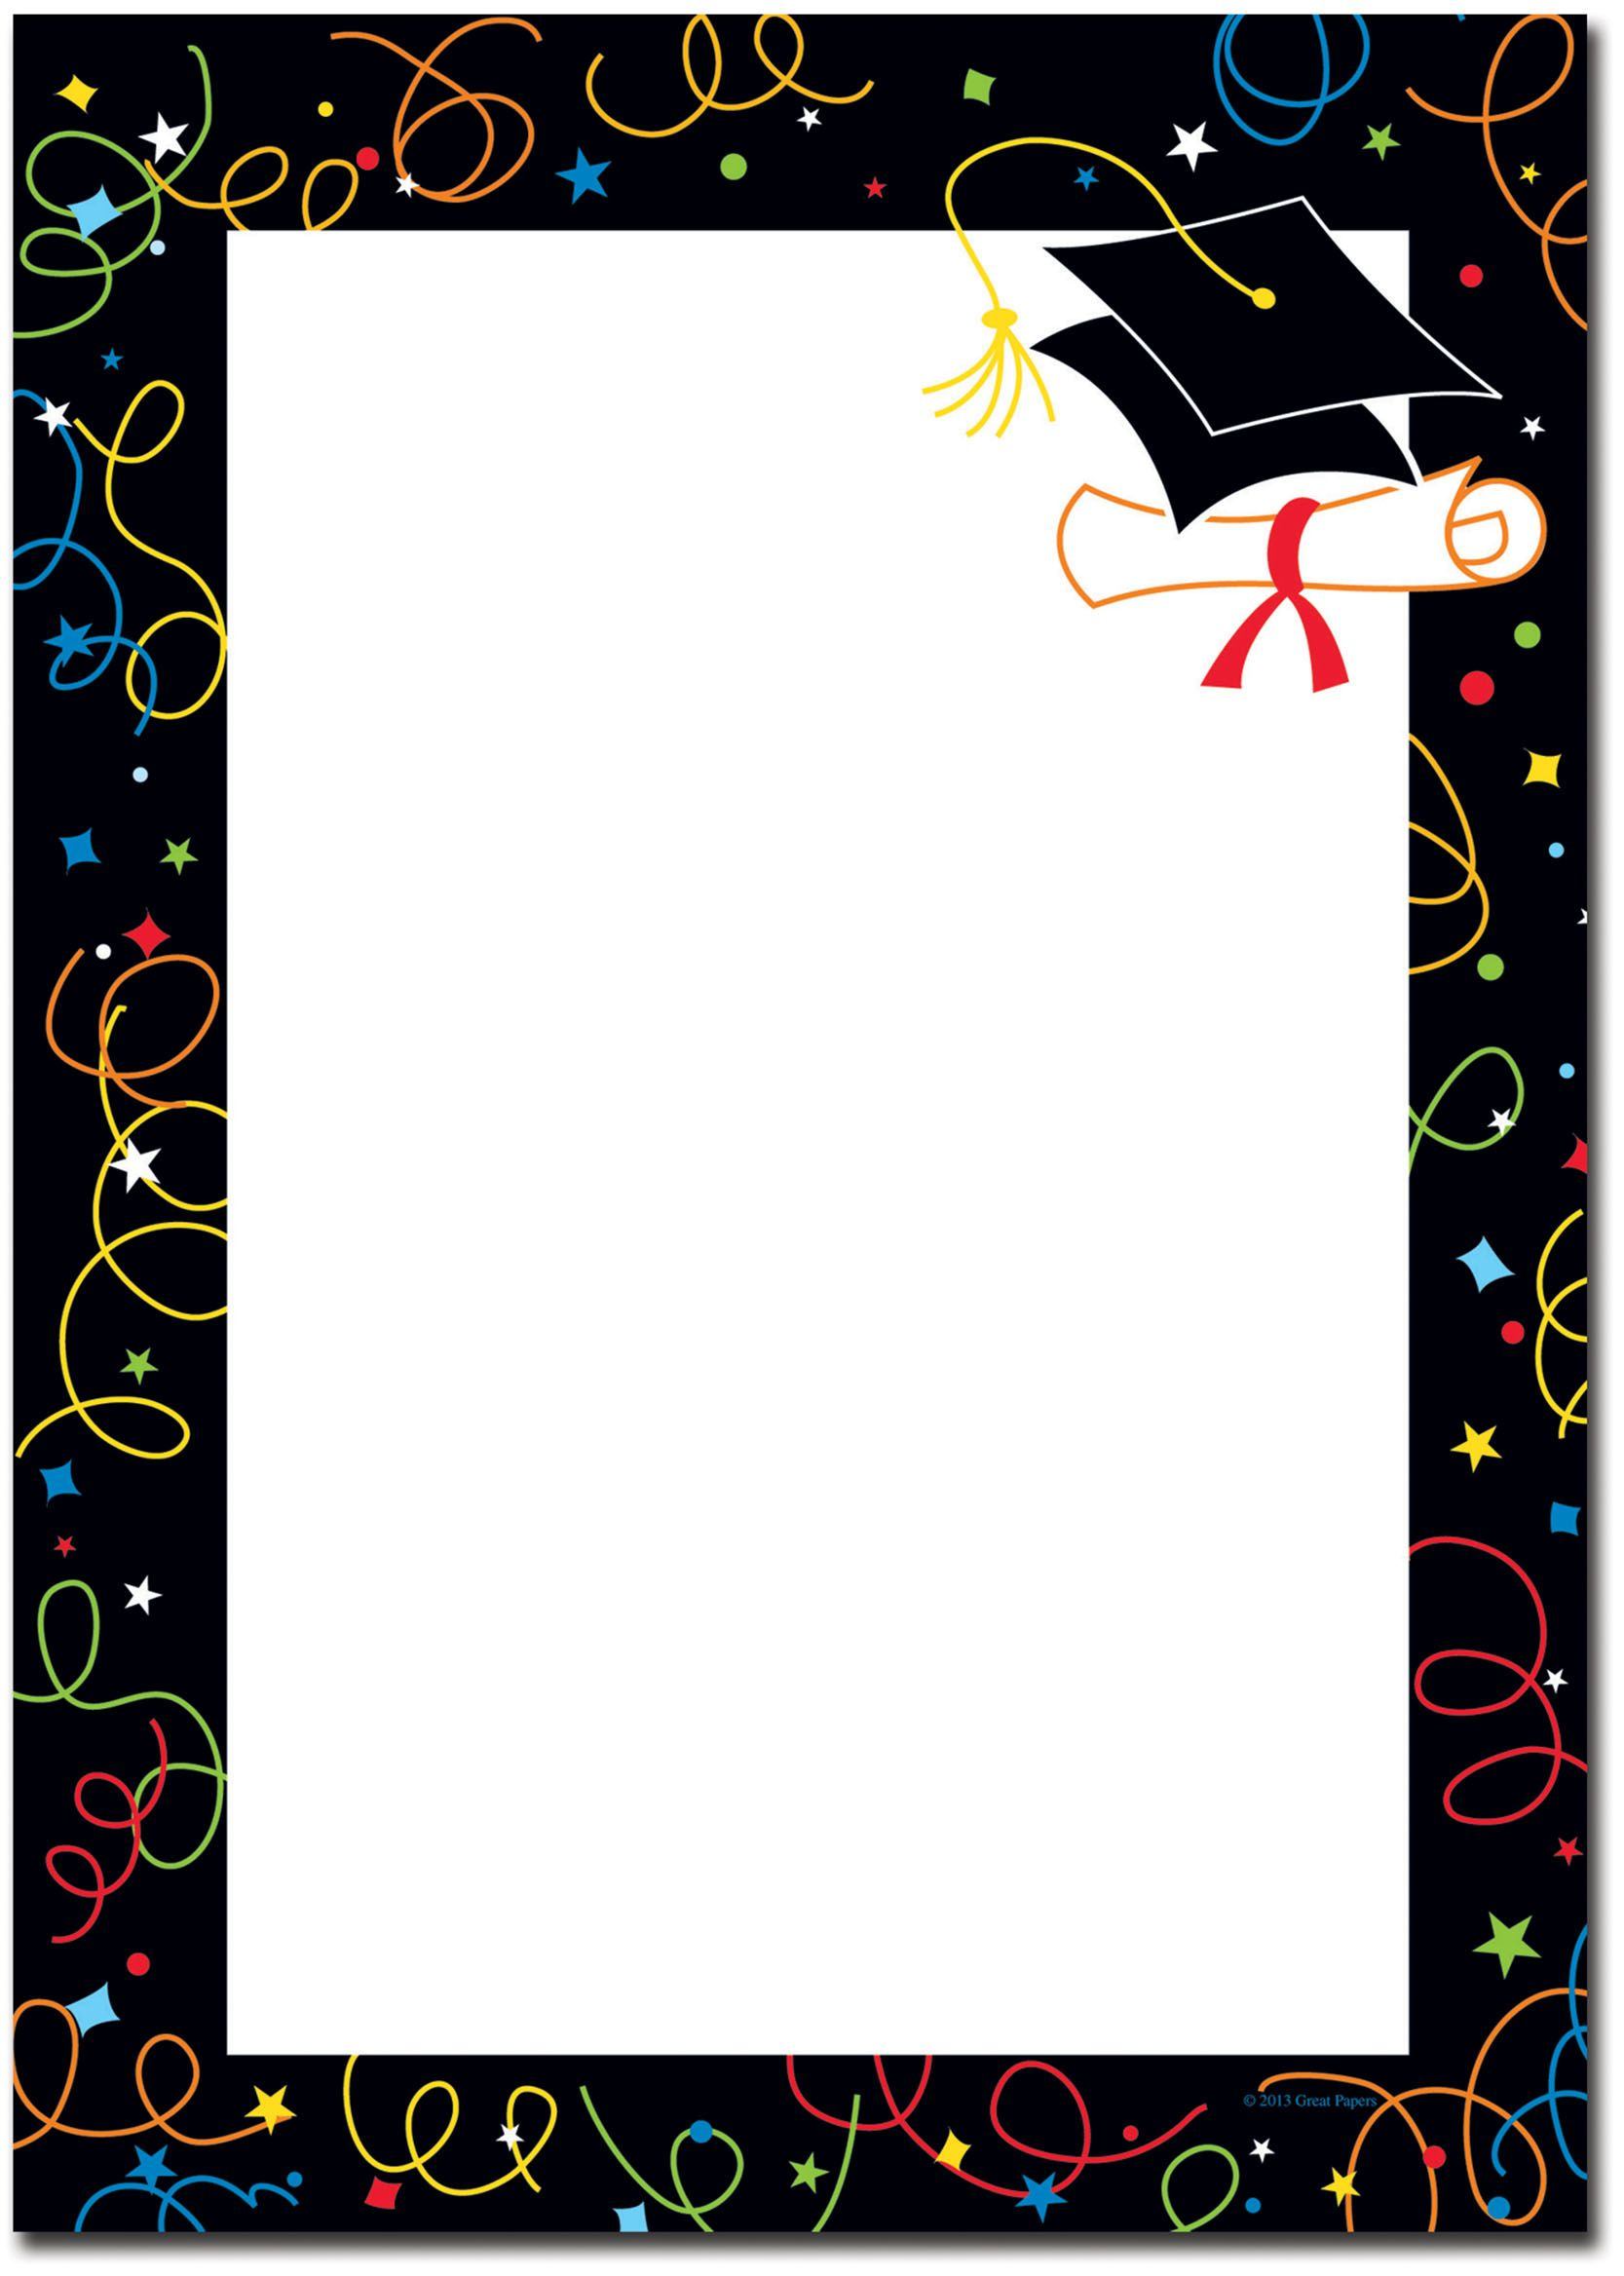 Gold and black graduation border paper clipart svg stock Graduation Borders Graduation | GRAD | Graduation invitations ... svg stock